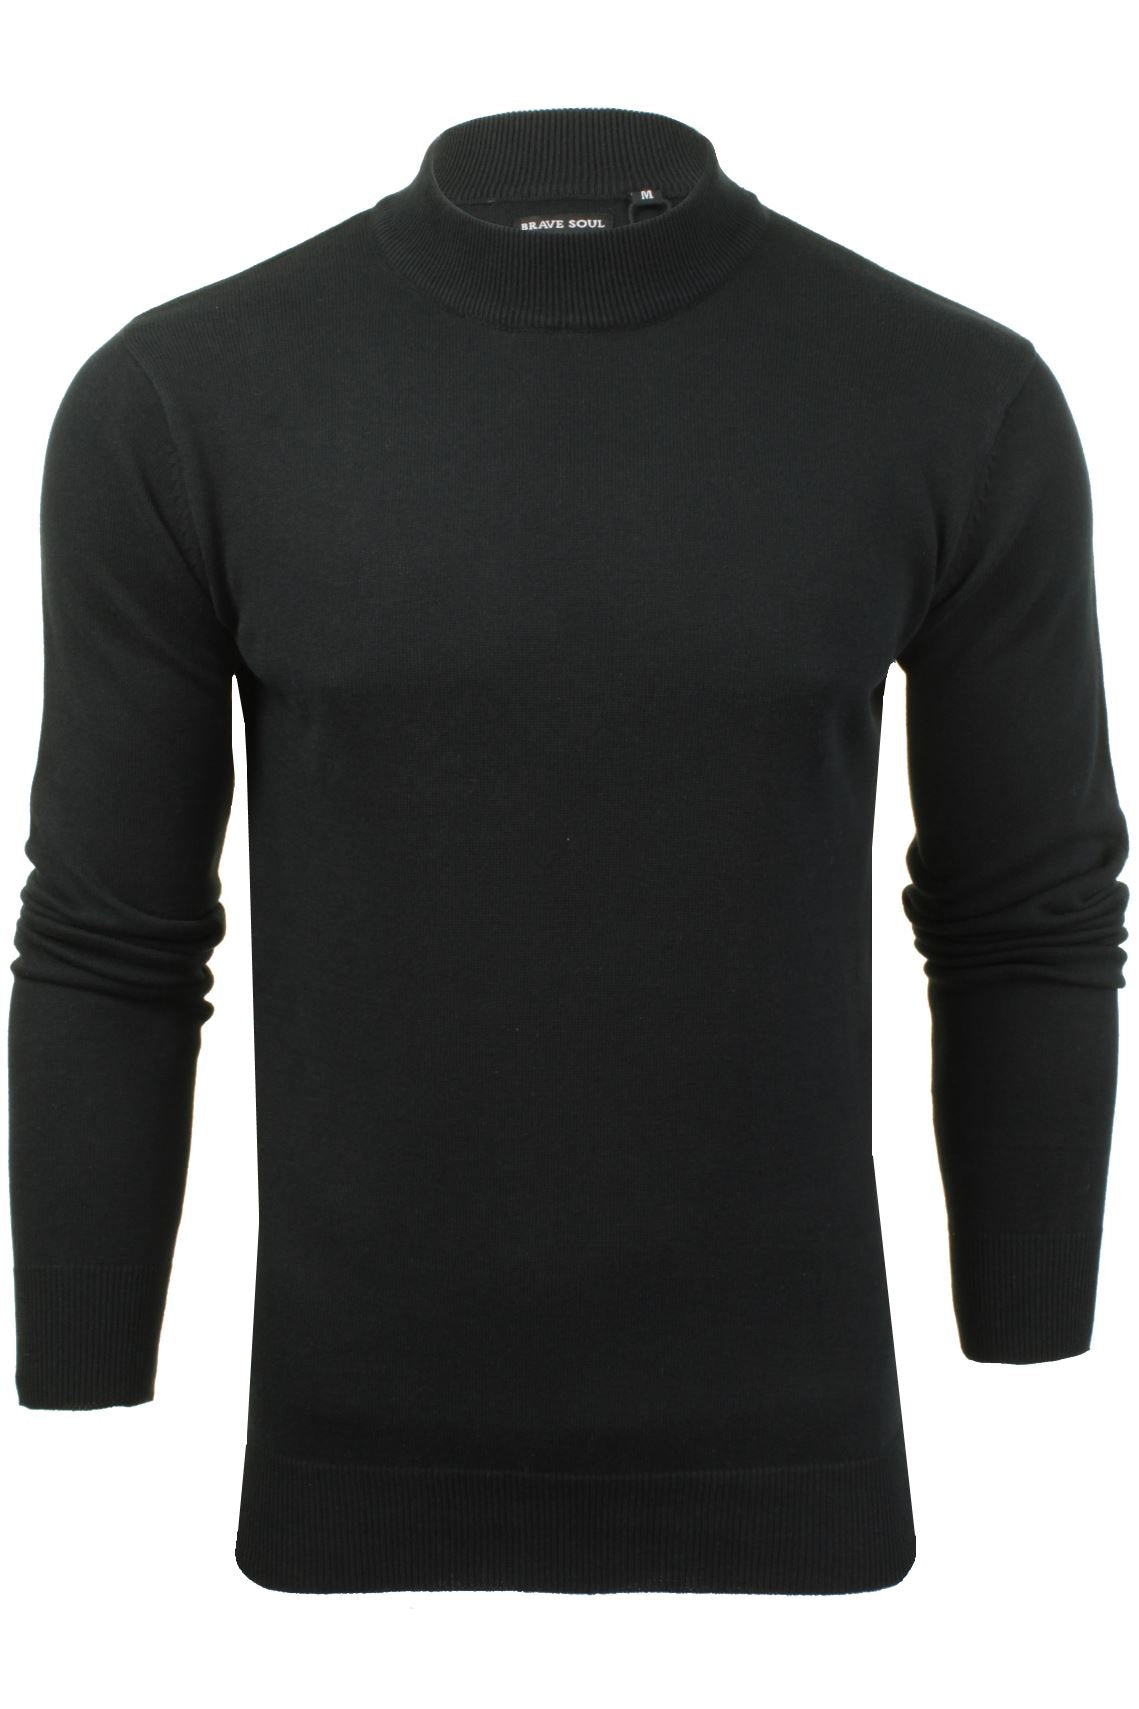 Mens Turtle Neck Jumper by Brave Soul_01_Mk-181Turtle-X_Jet Black